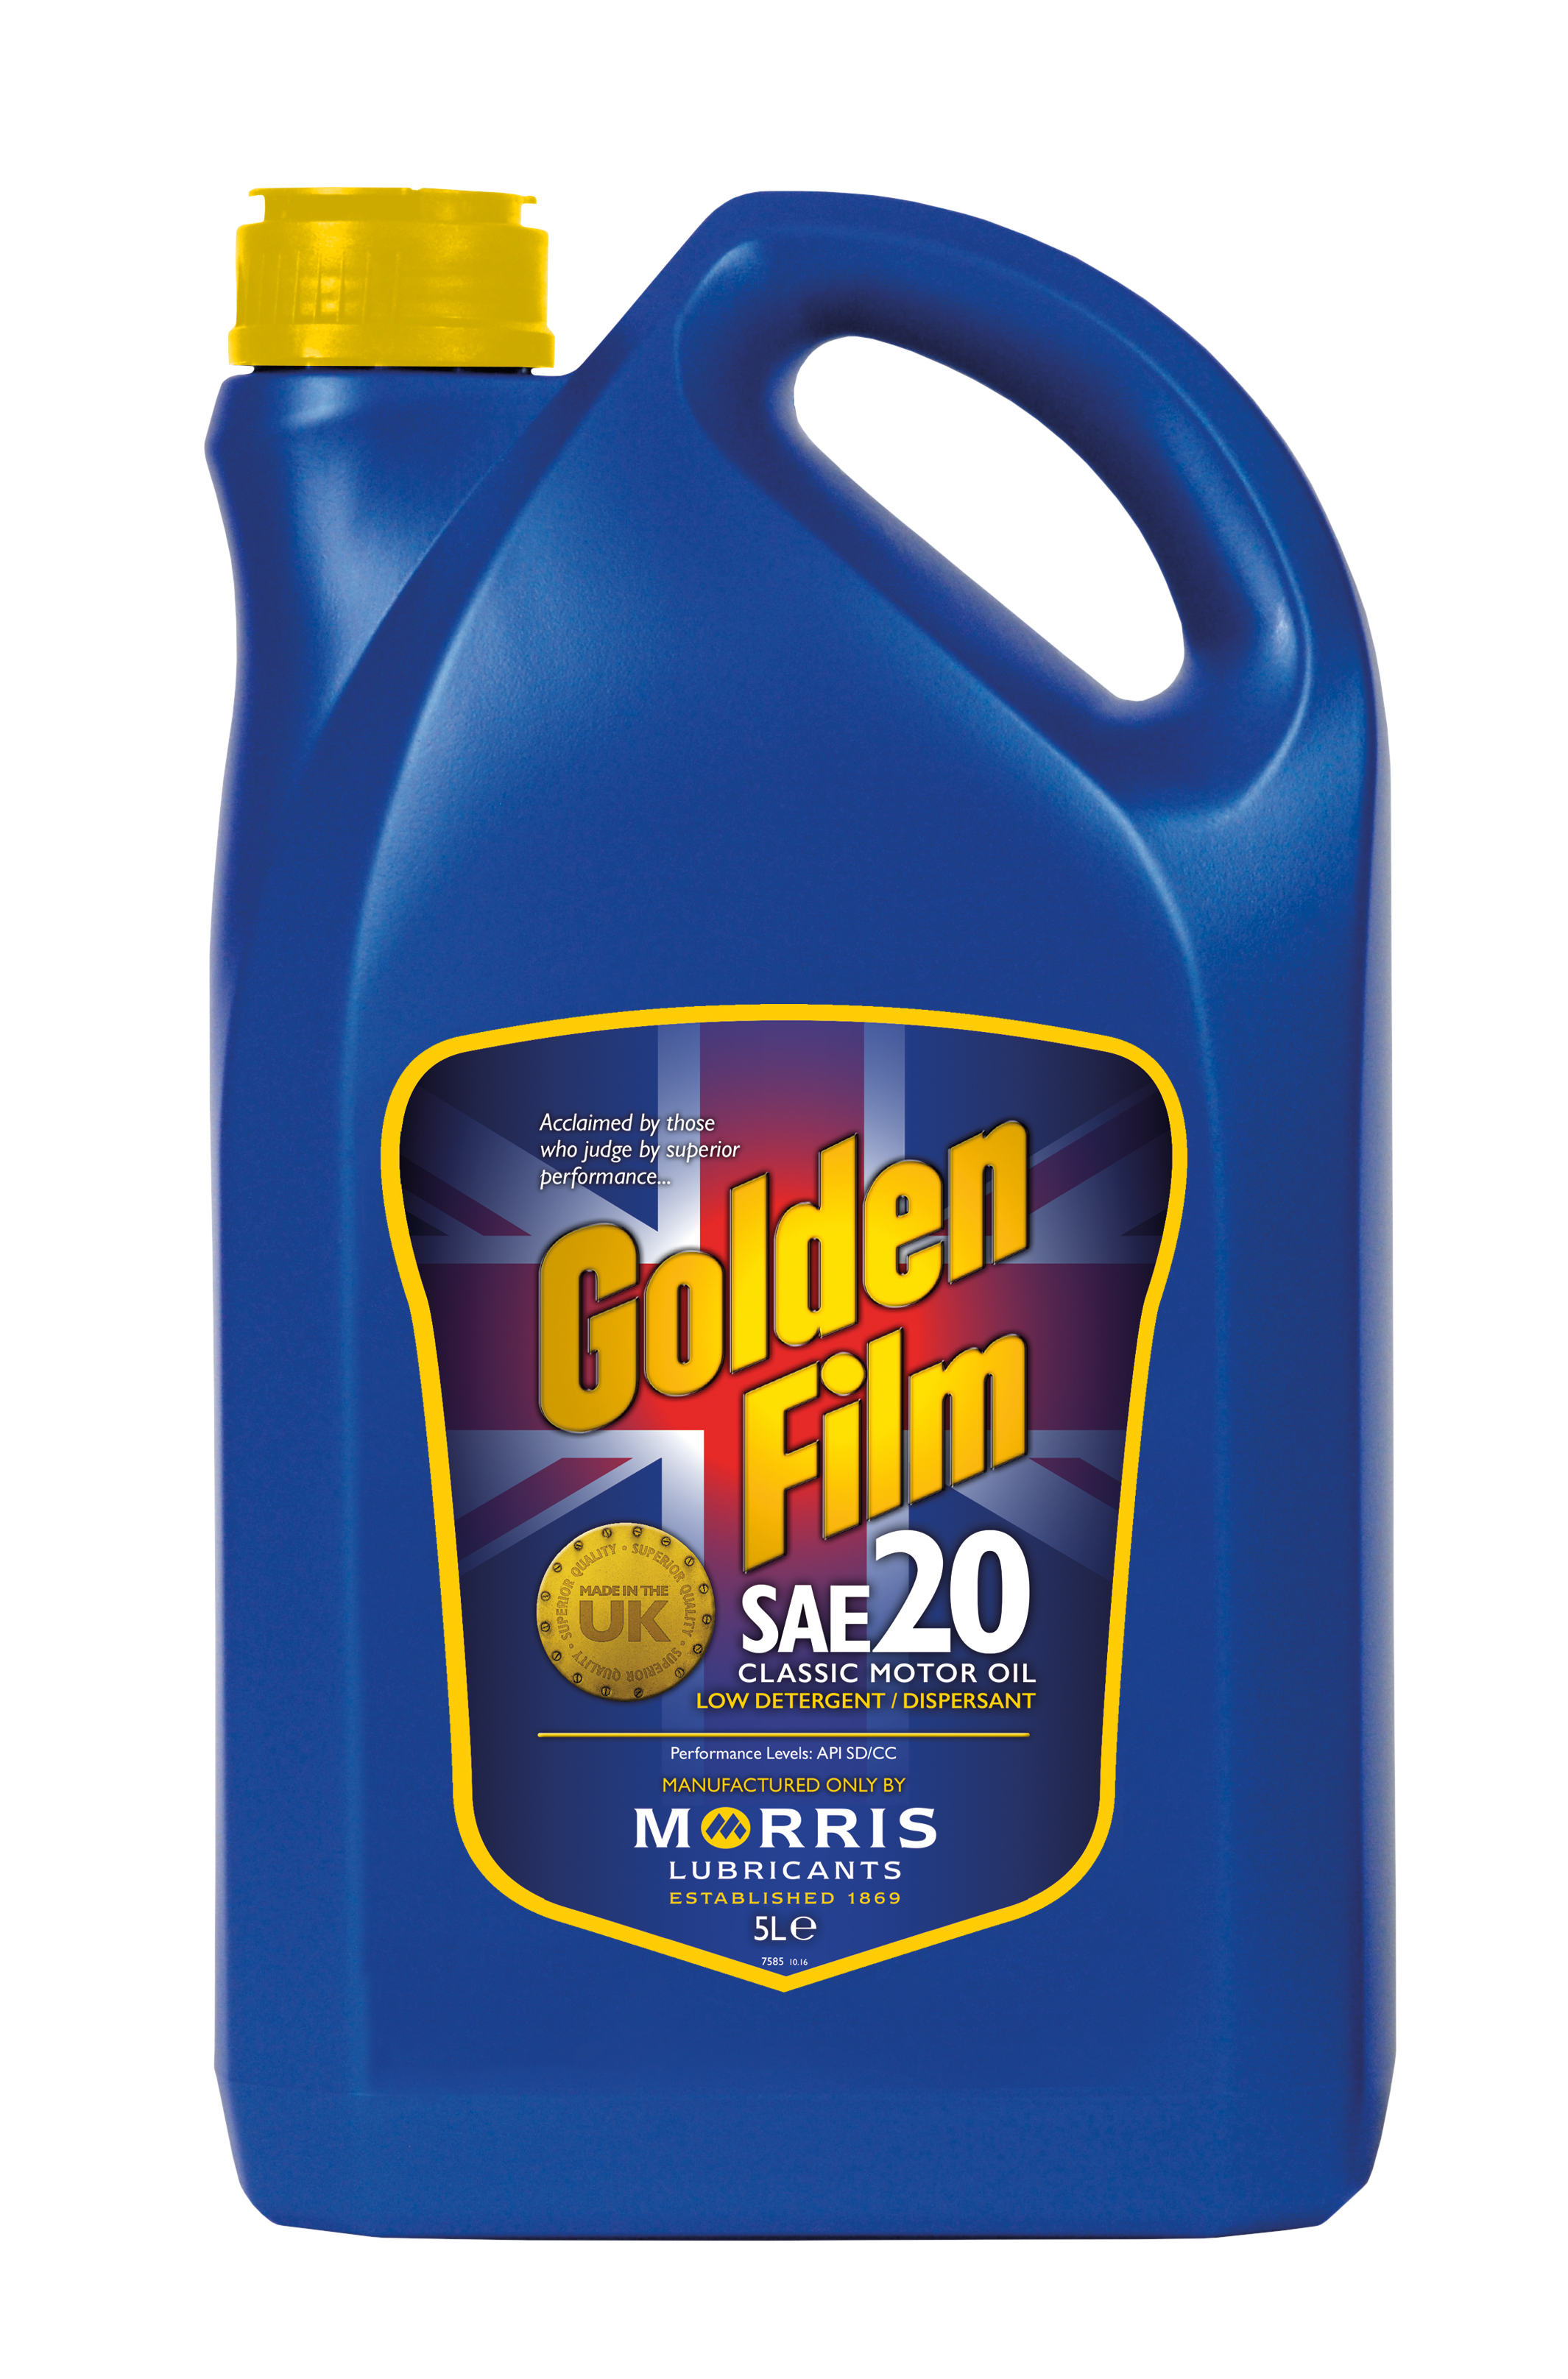 Morris lubricants golden film sae 20 classic motor oil for What motor oil for my car